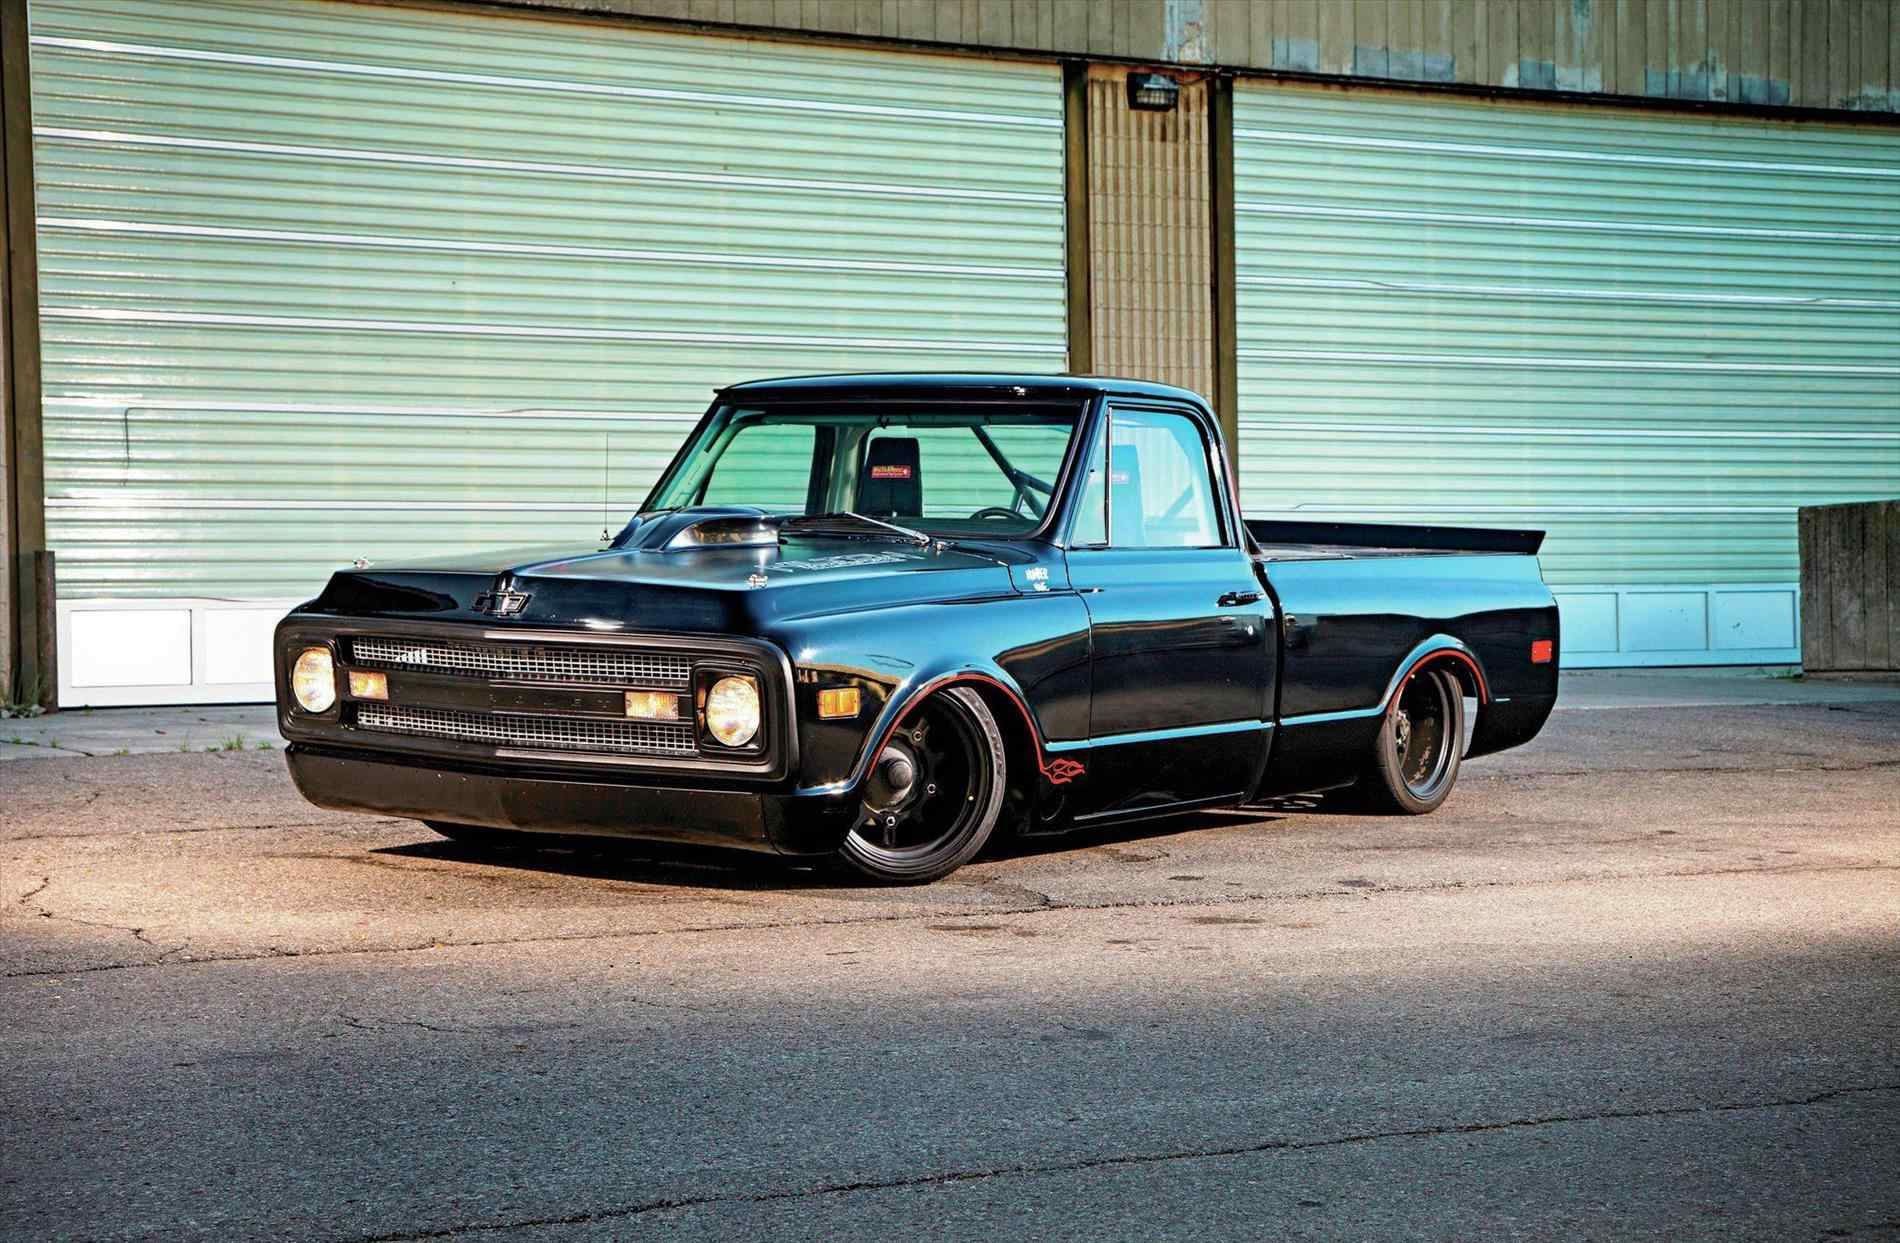 1970 Chevy Pickup >> 1970 Chevy Truck Wallpapers Wallpaper Cave